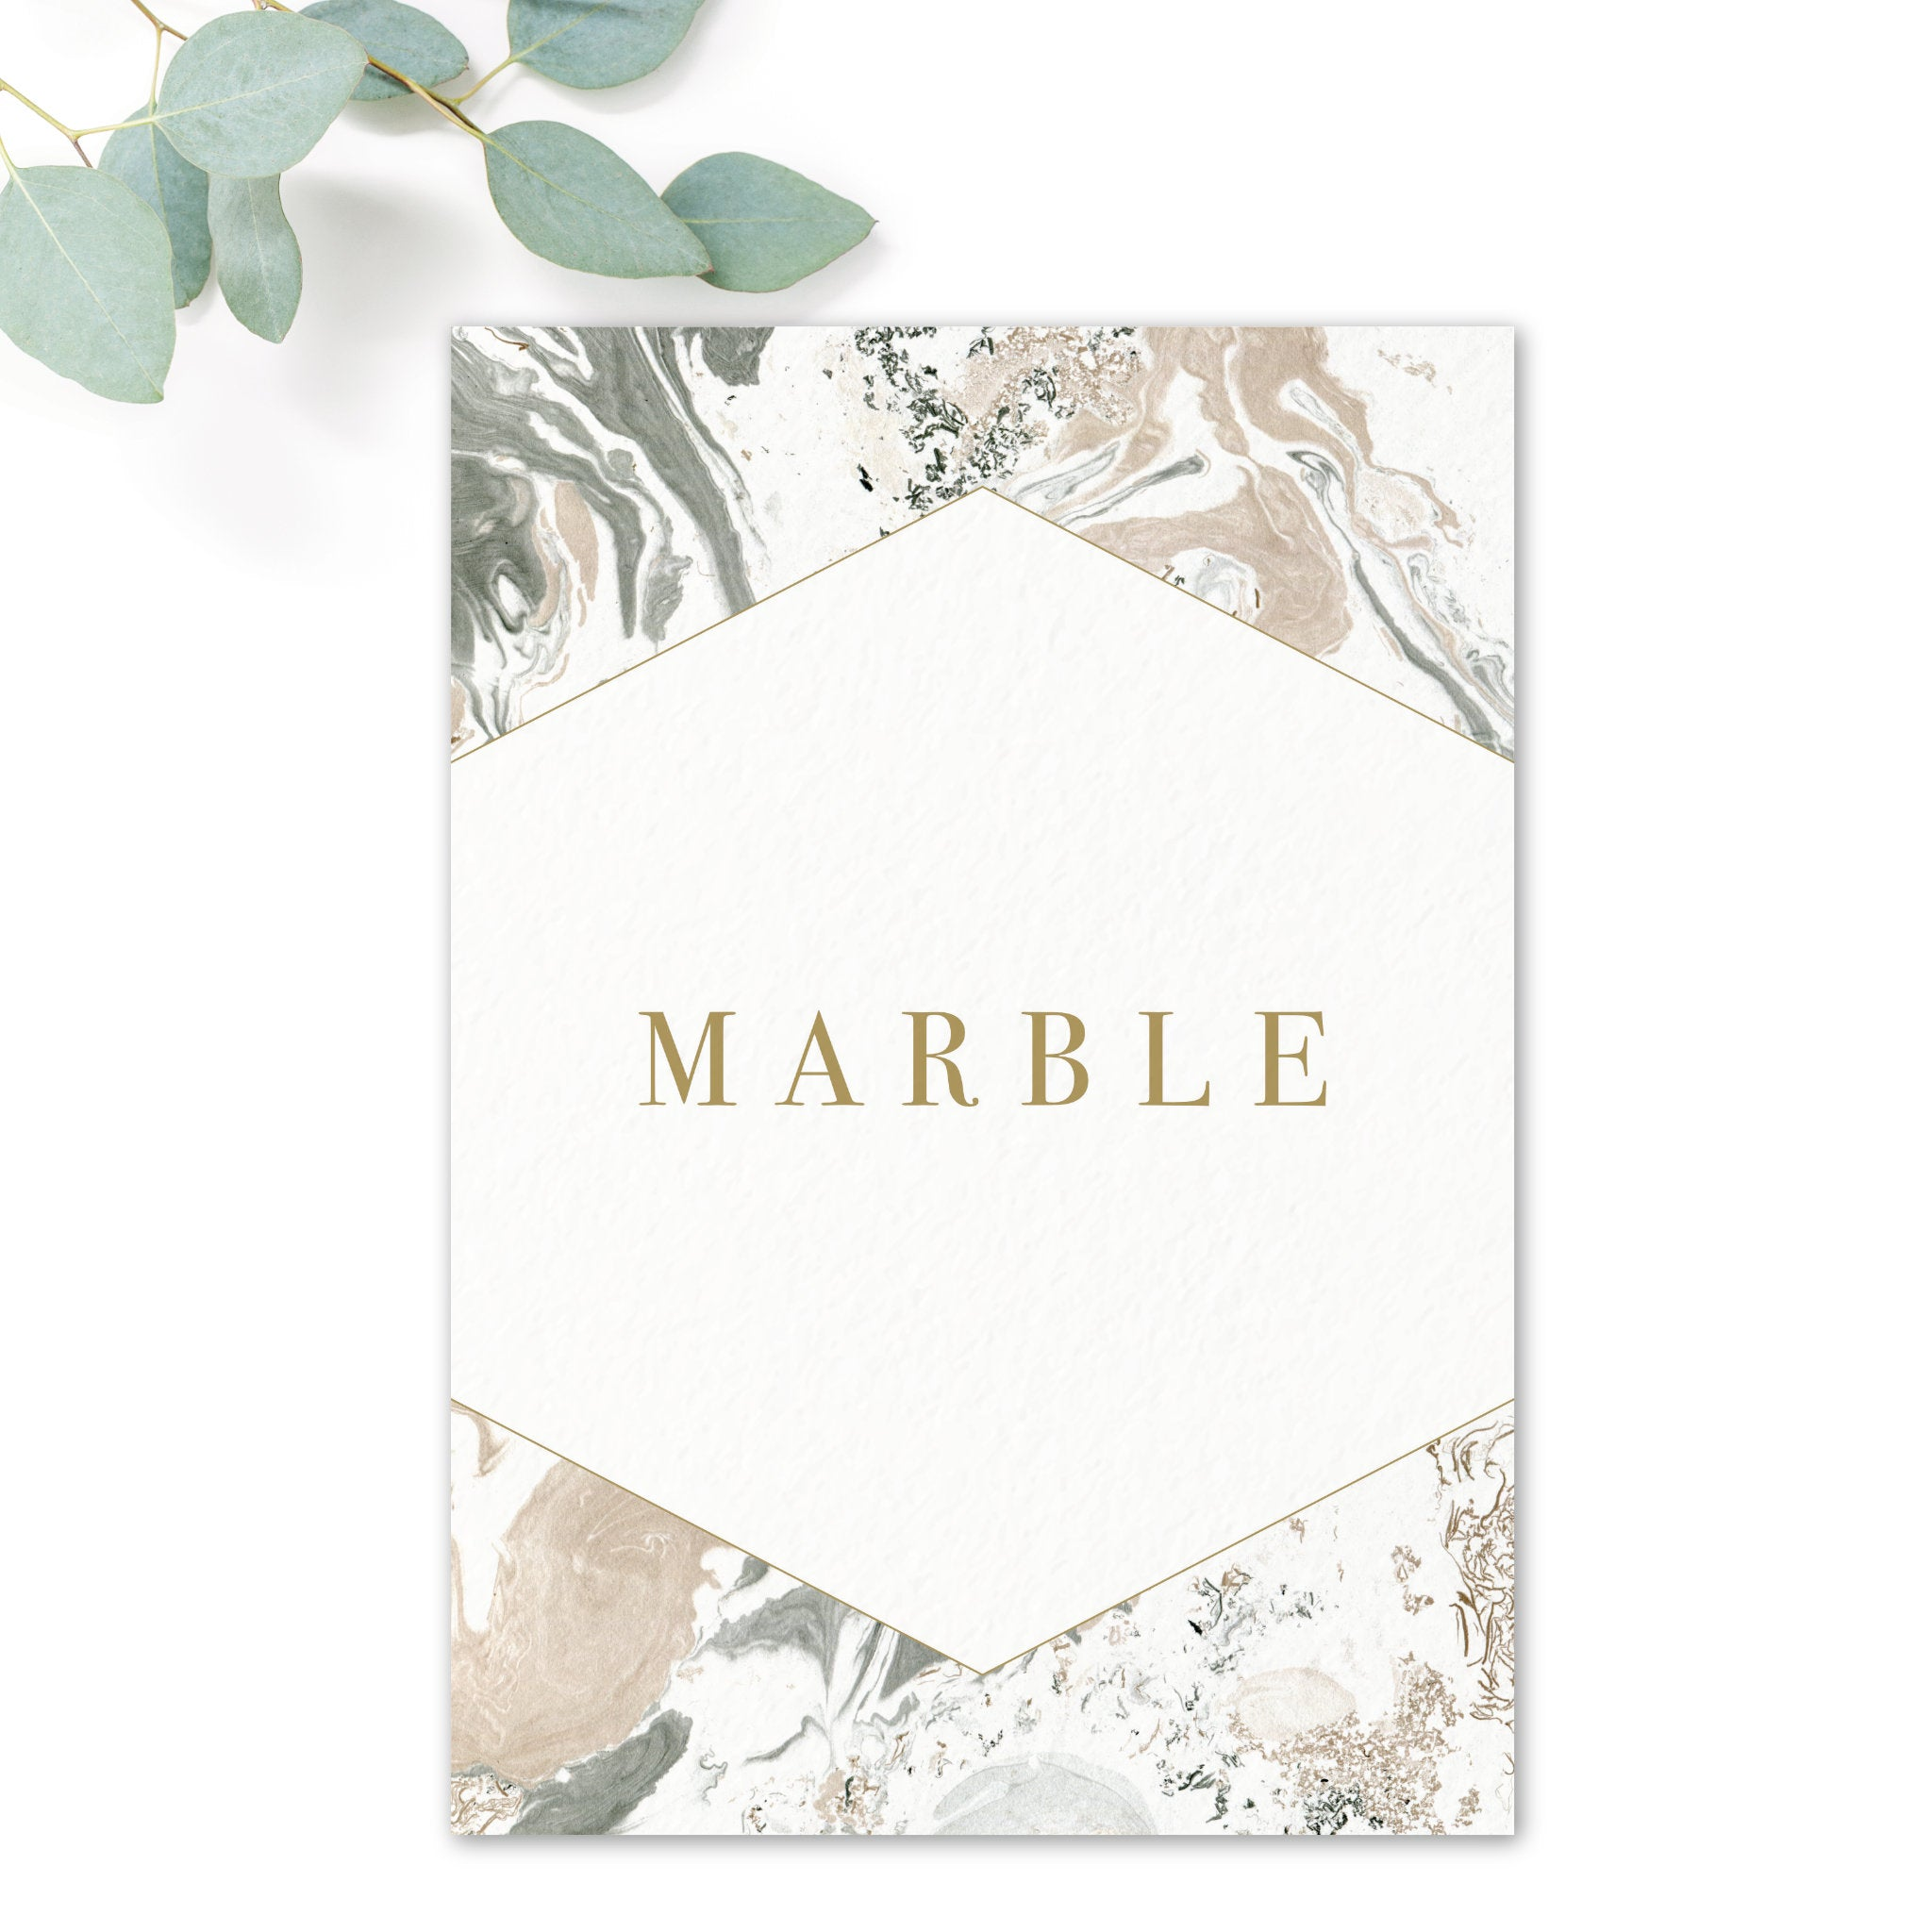 Marble Grey Nude Stone Wedding Table Name